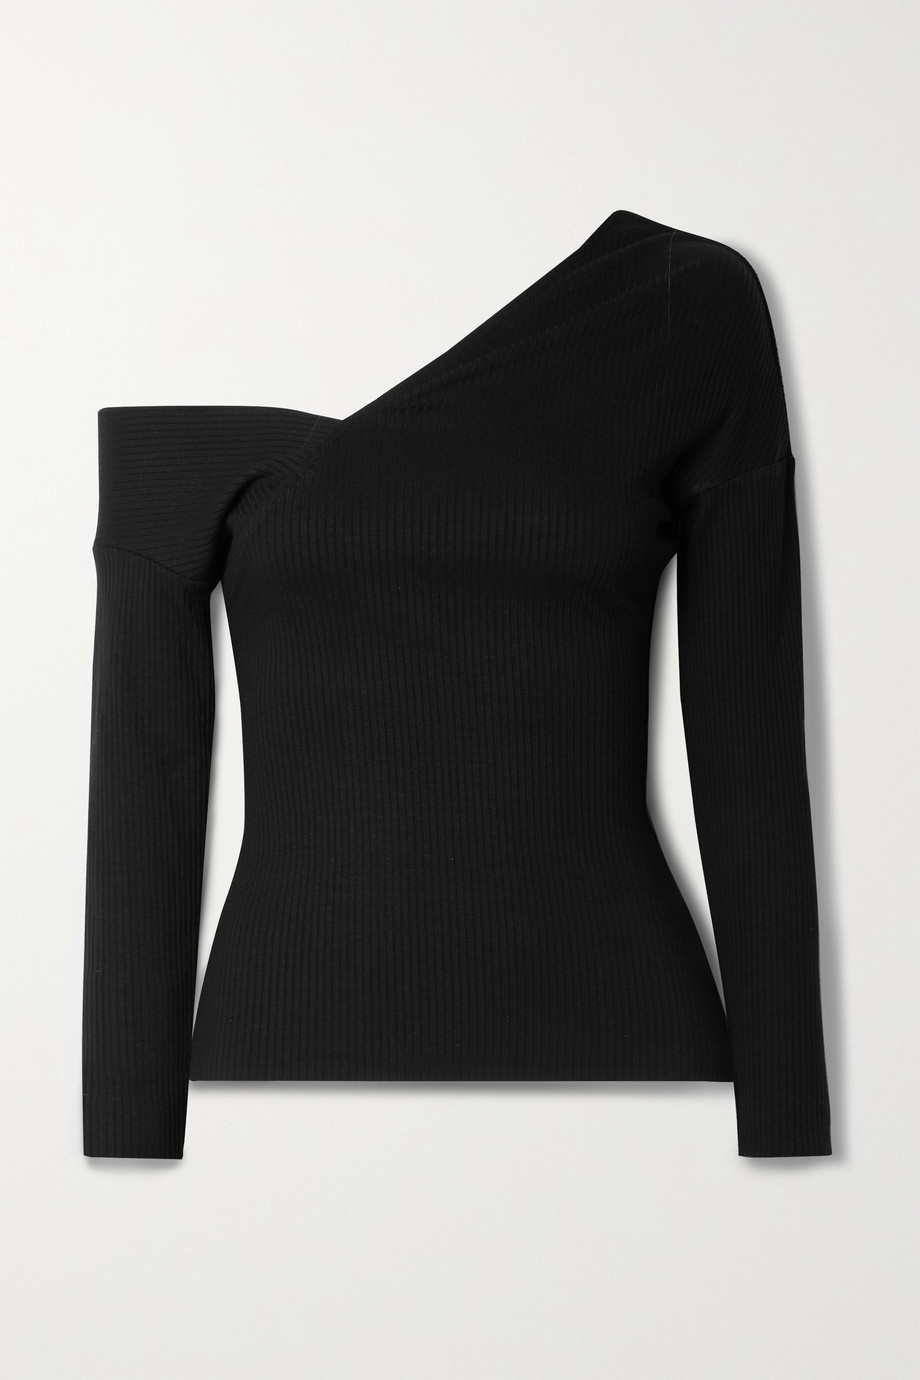 The Range Alloy off-the-shoulder ribbed stretch-knit top